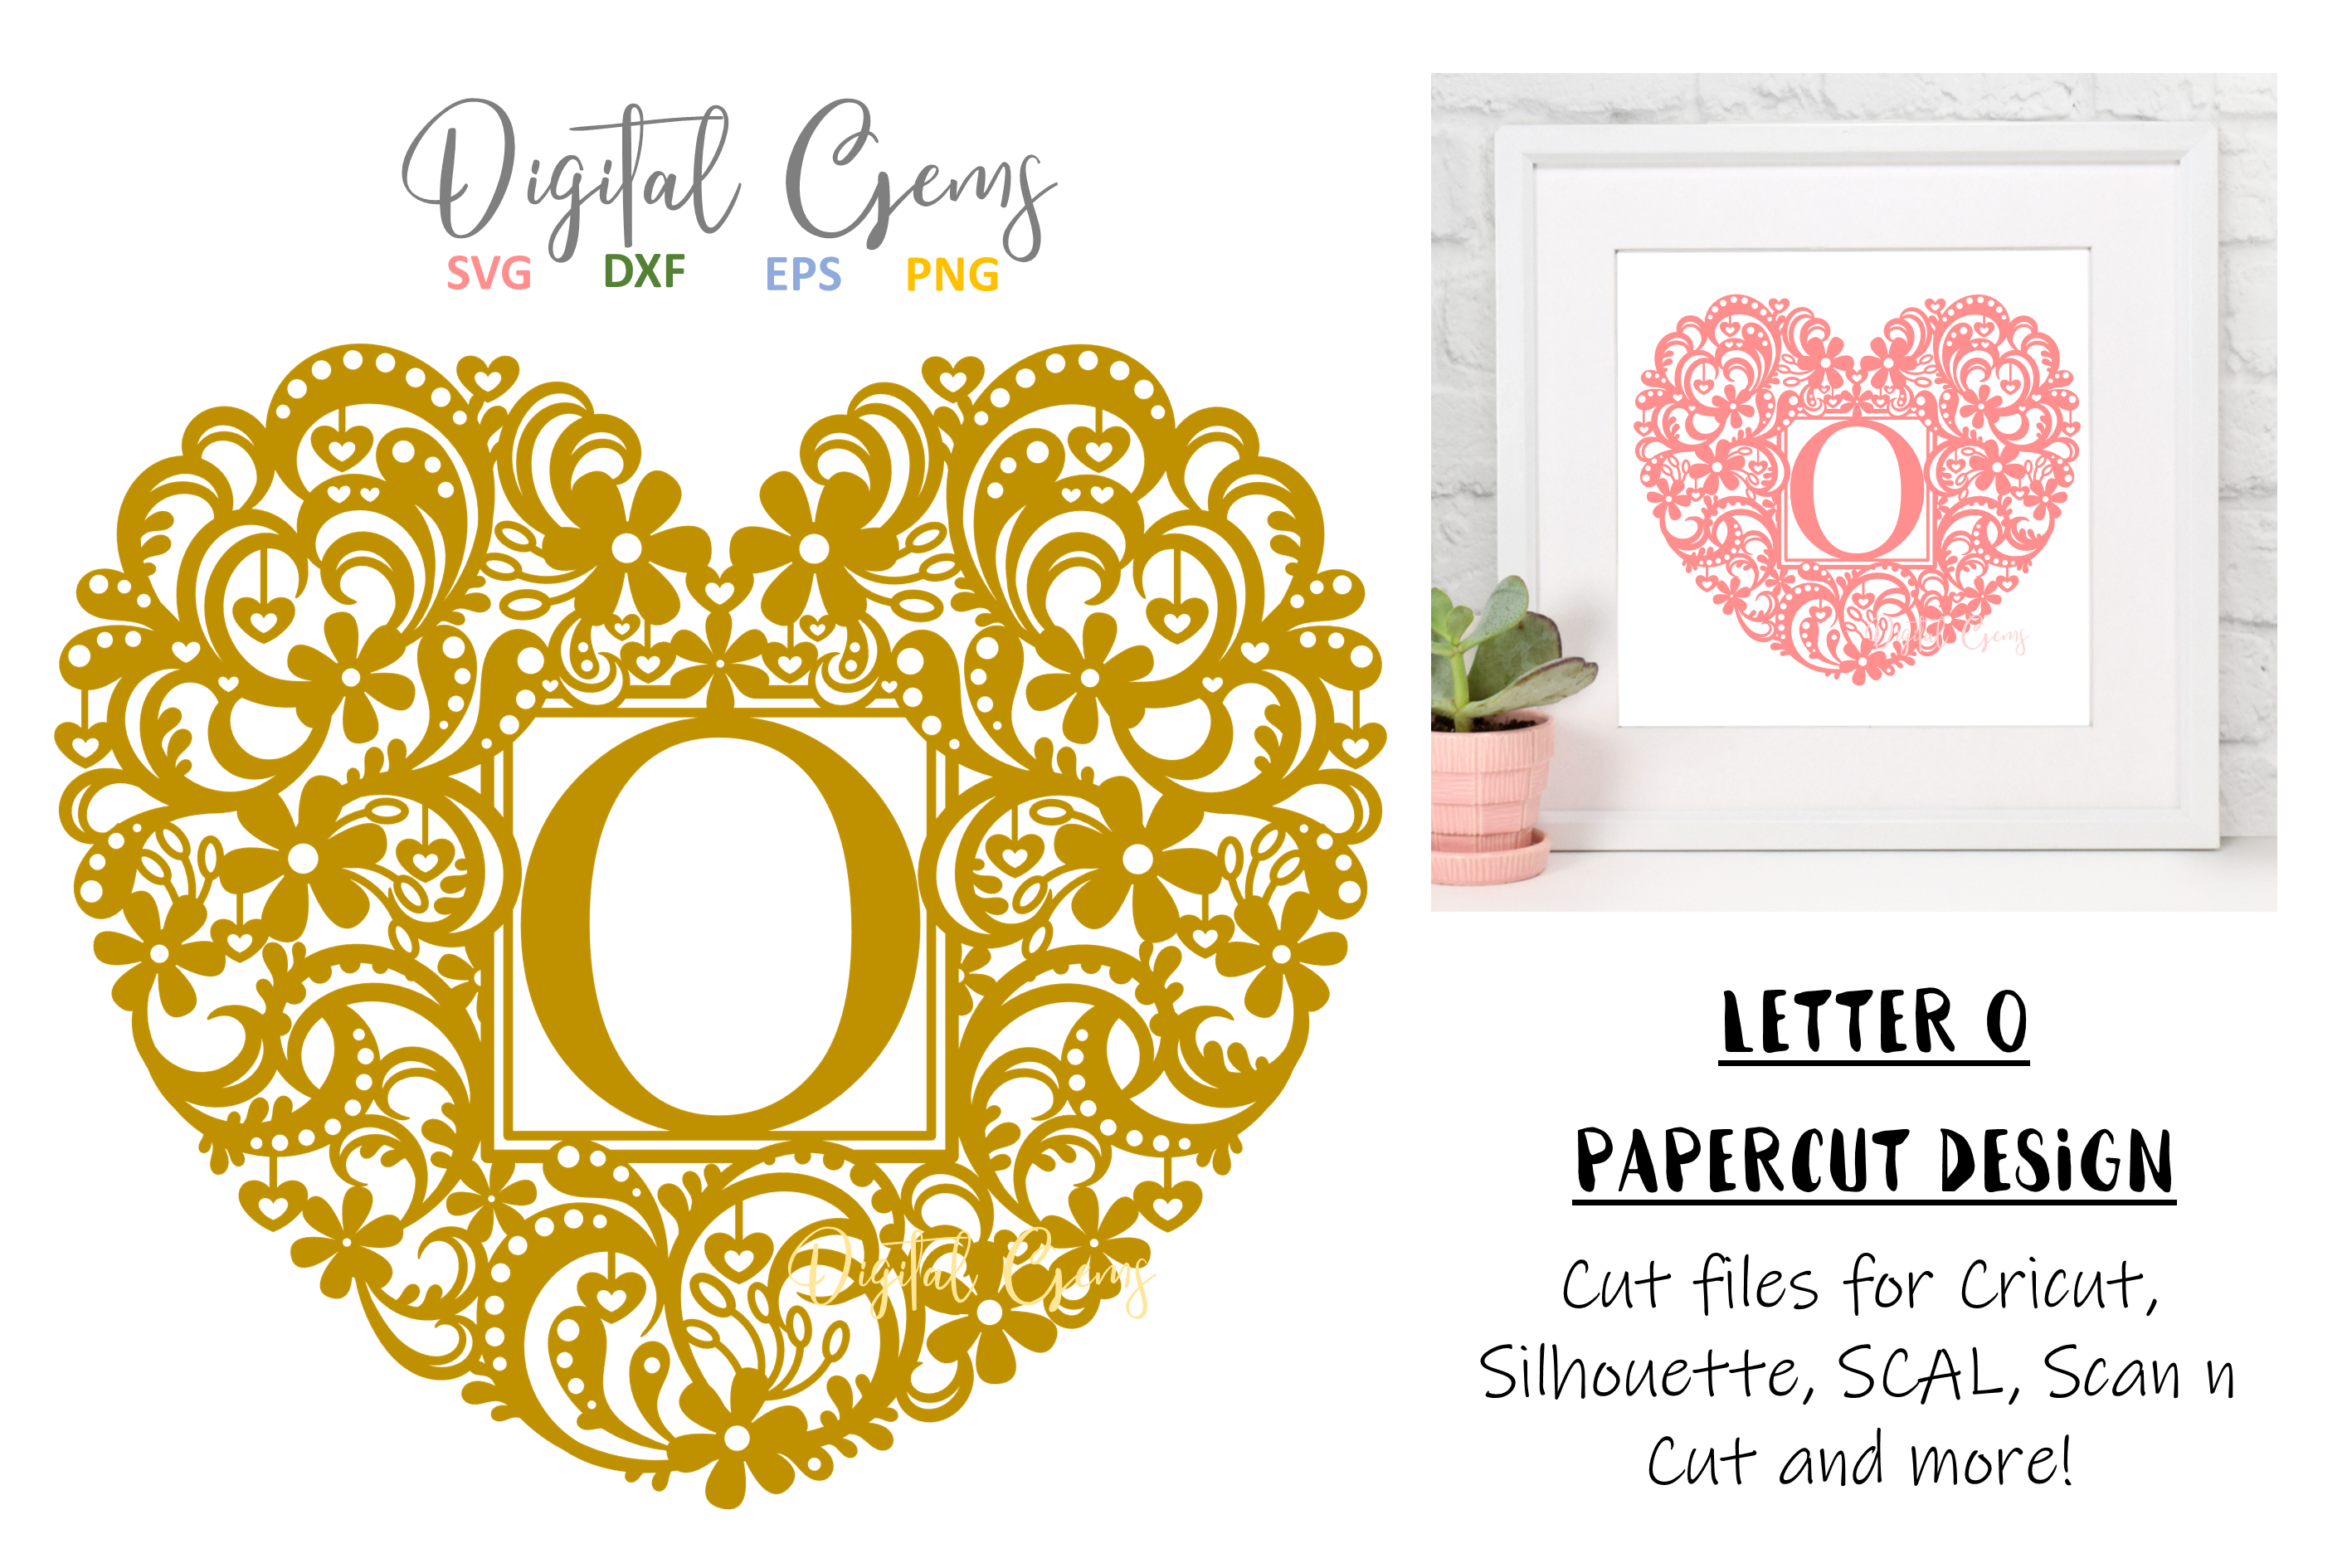 Letter O paper cut design. SVG / DXF / EPS / PNG files example image 1